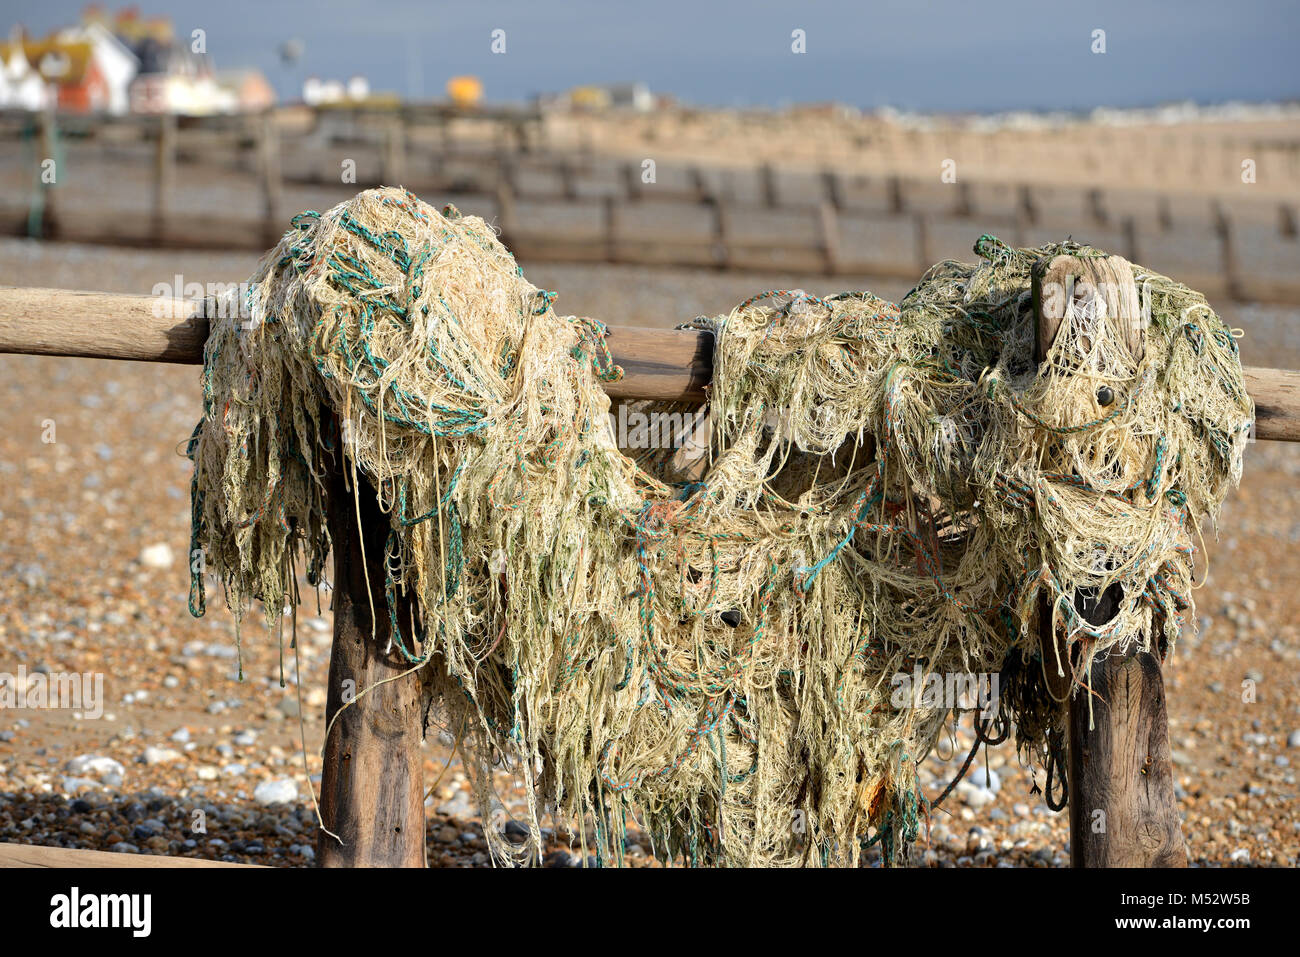 Discarded trawler net washed up on Pevensey Bay beach, East Sussex, UK - Stock Image